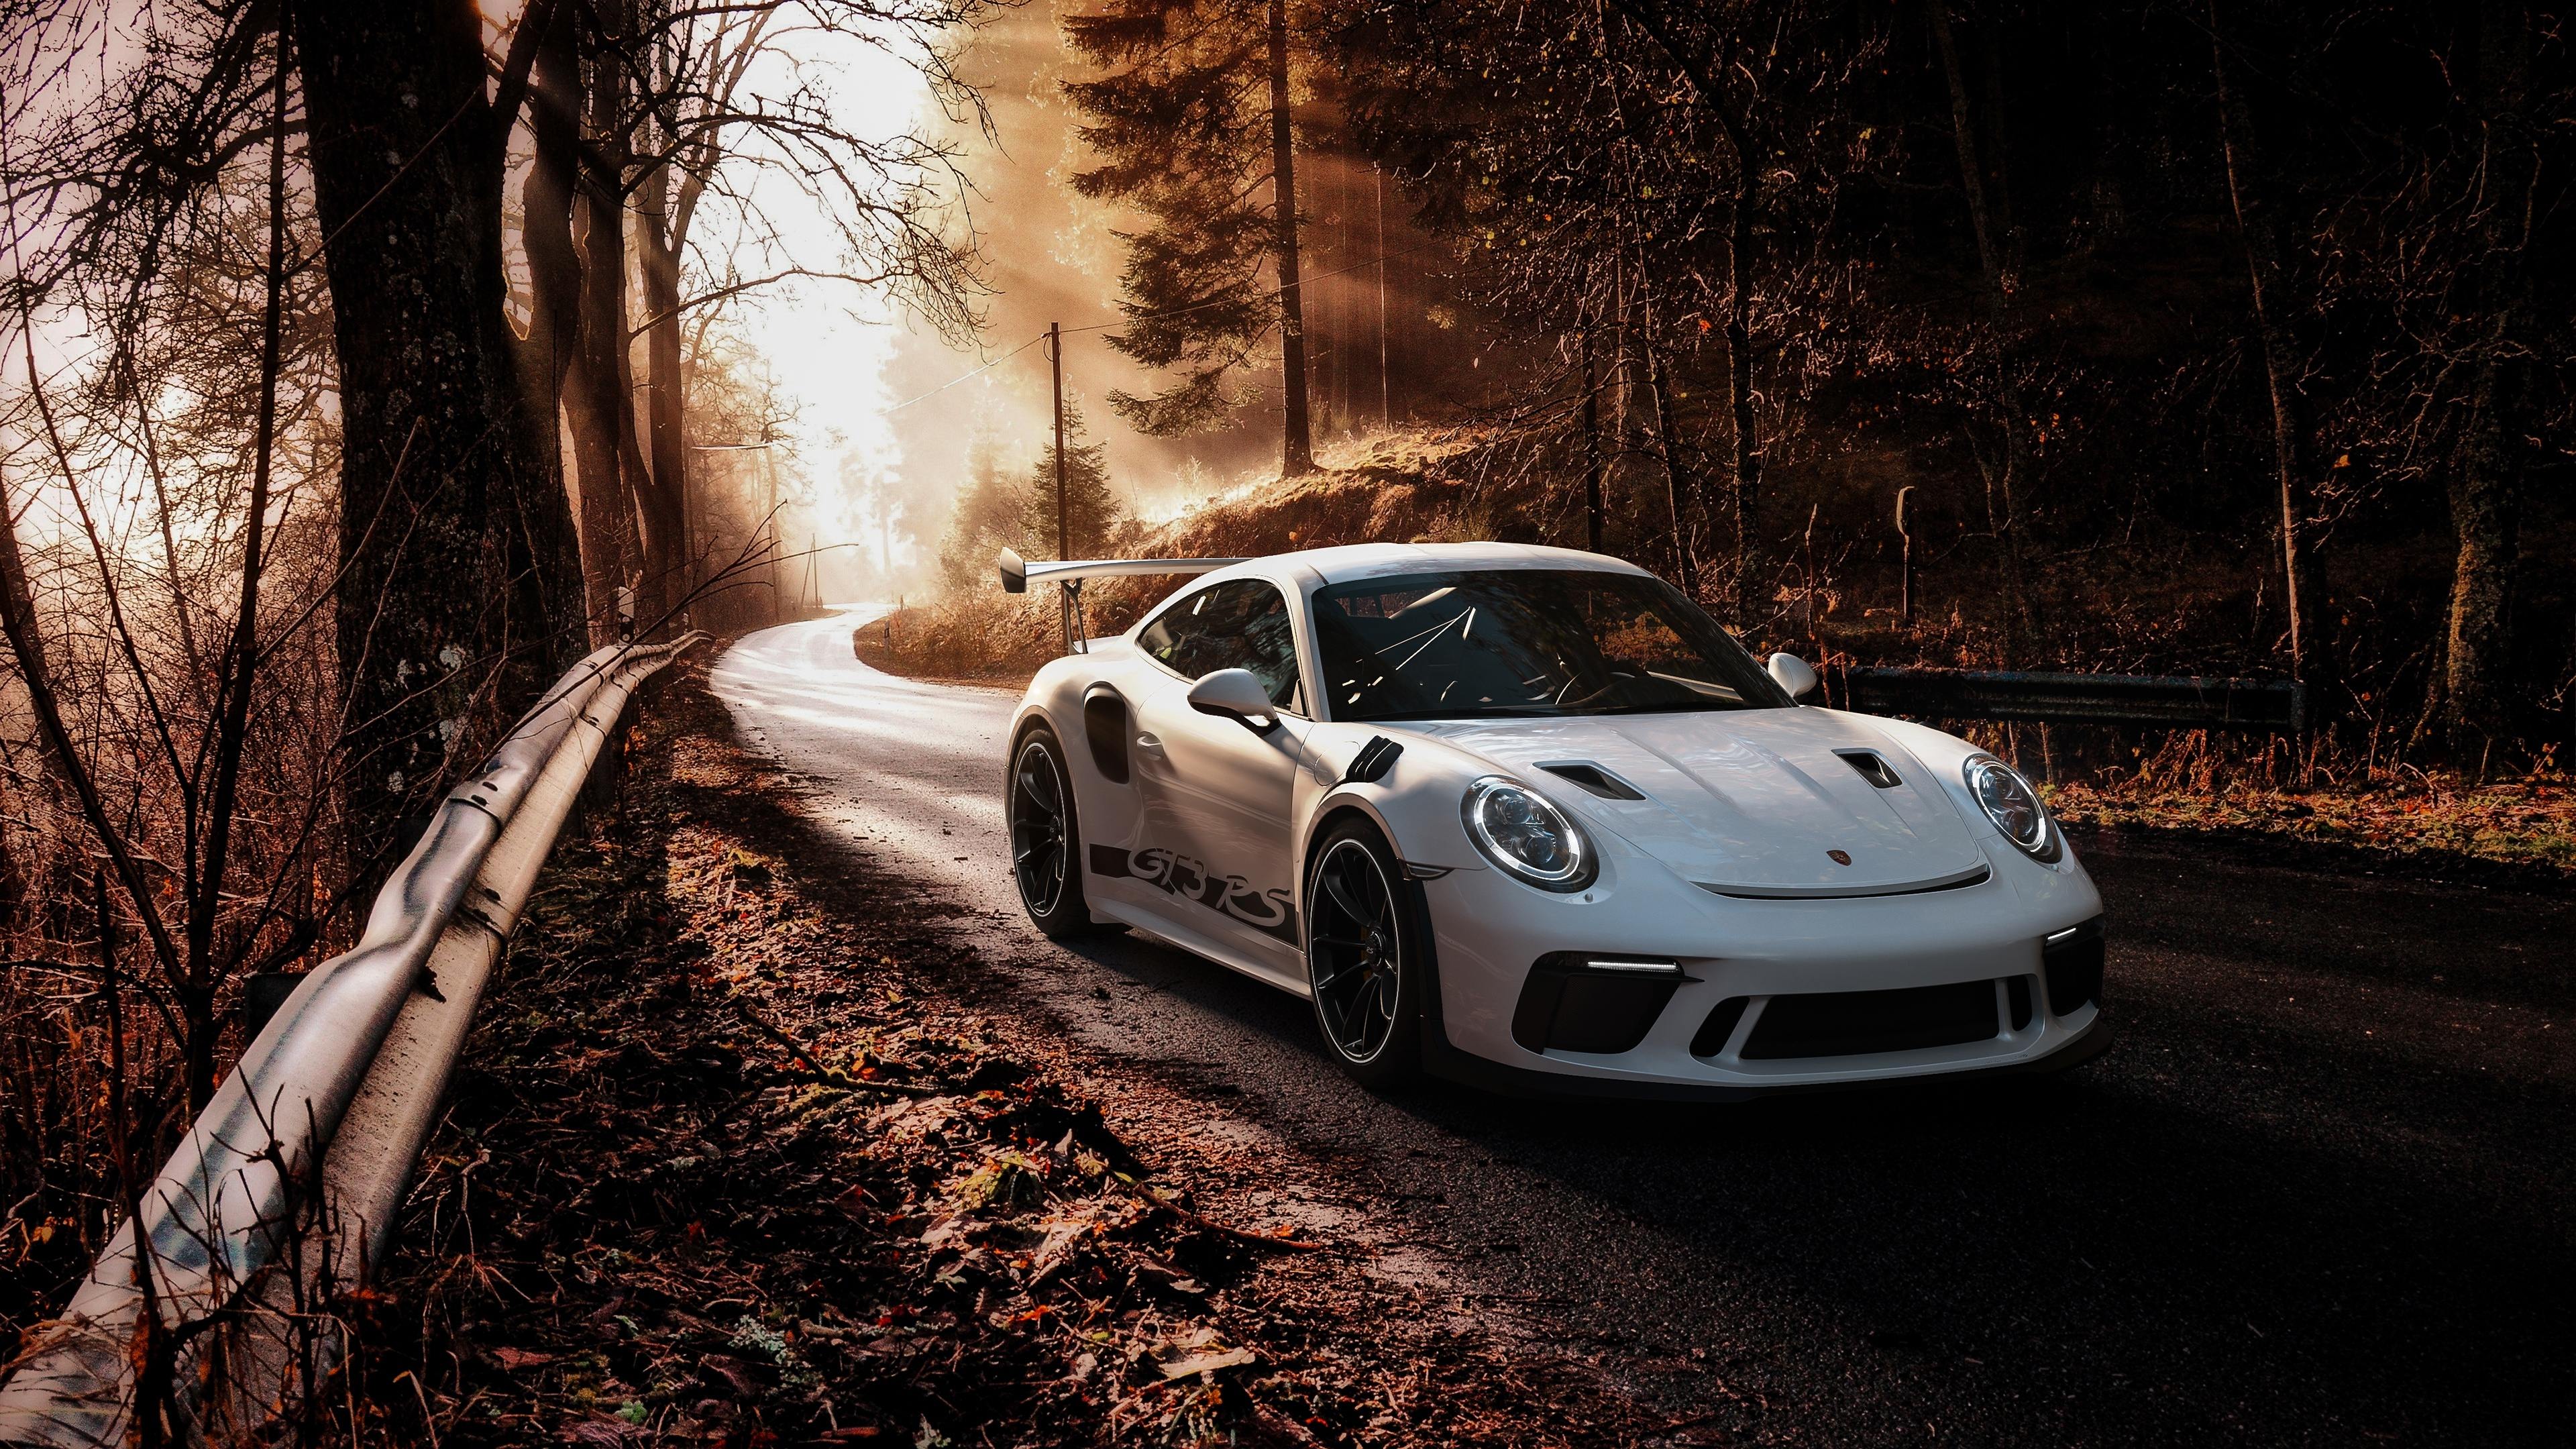 Porsche 911 GT3 4k Ultra HD Wallpaper Background Image 3840x2160